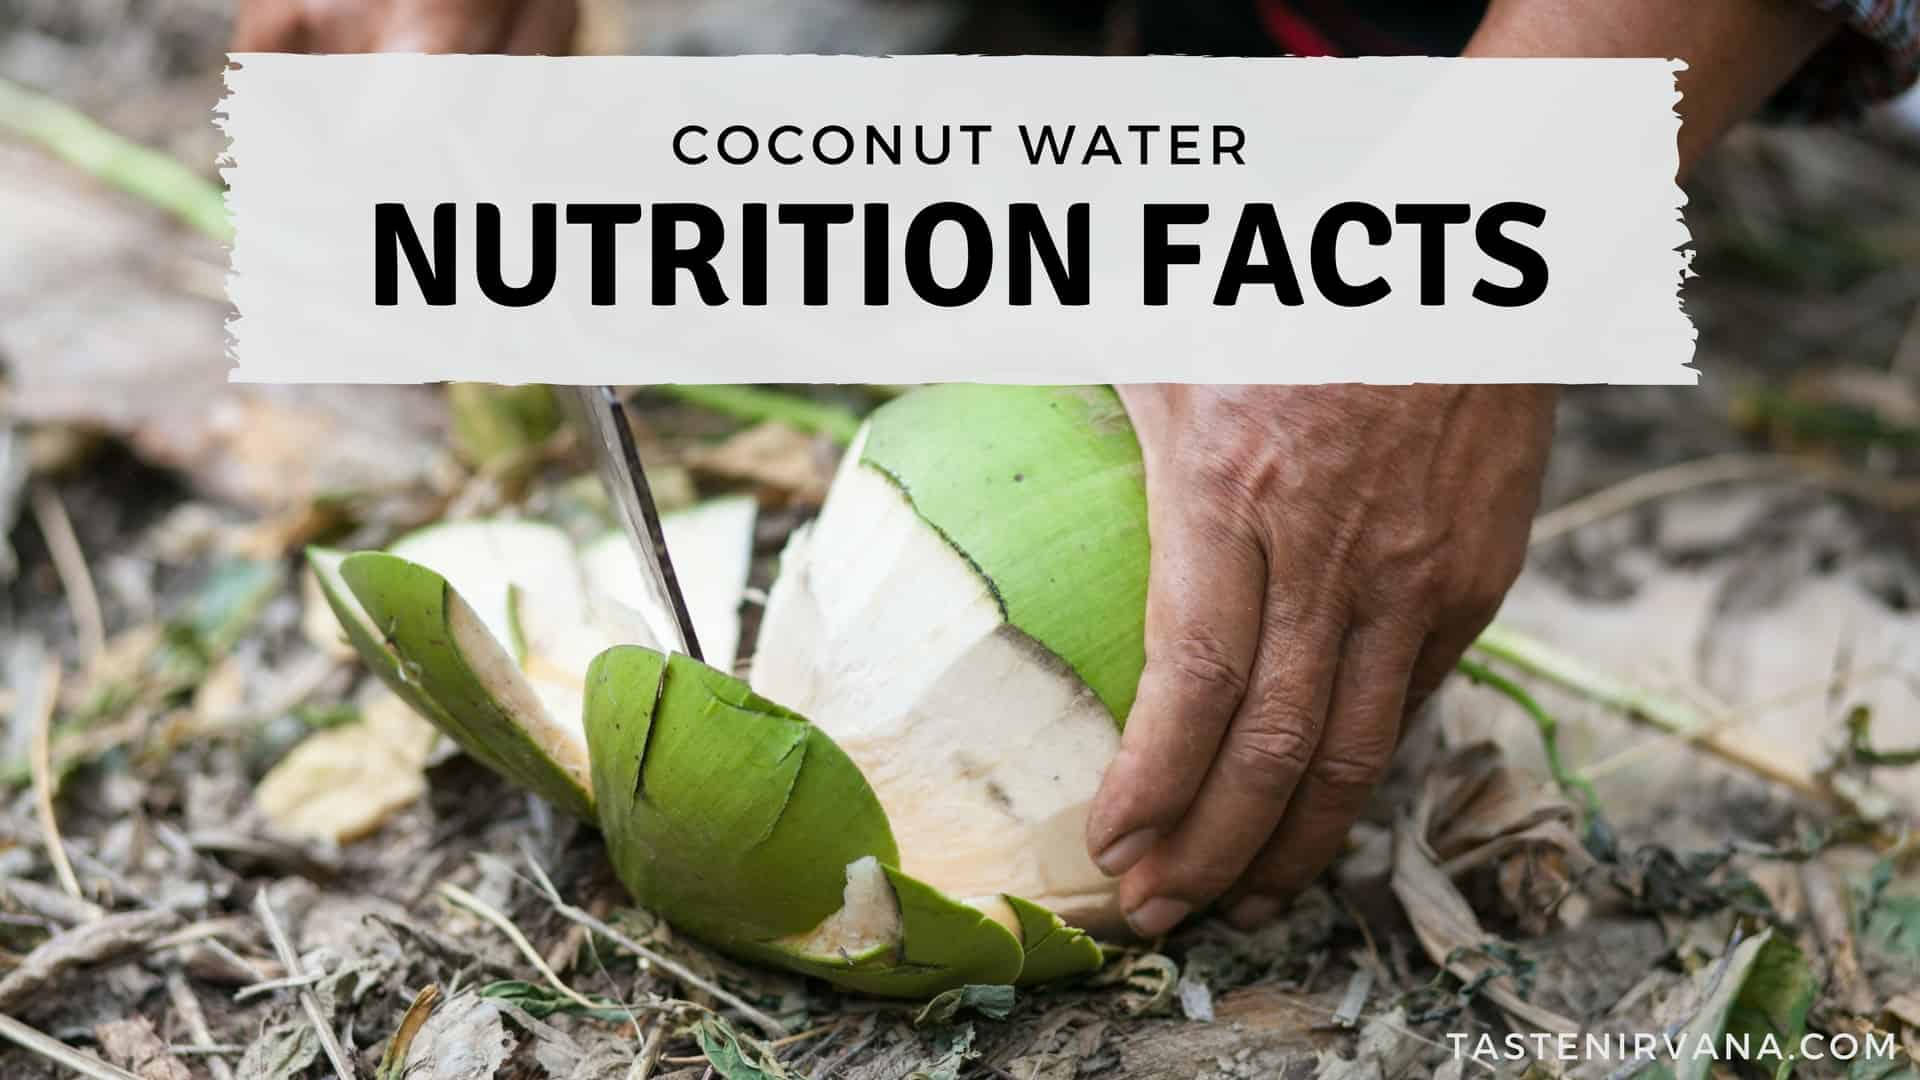 Blog Cover Image - Coconut Water Nutrition Facts